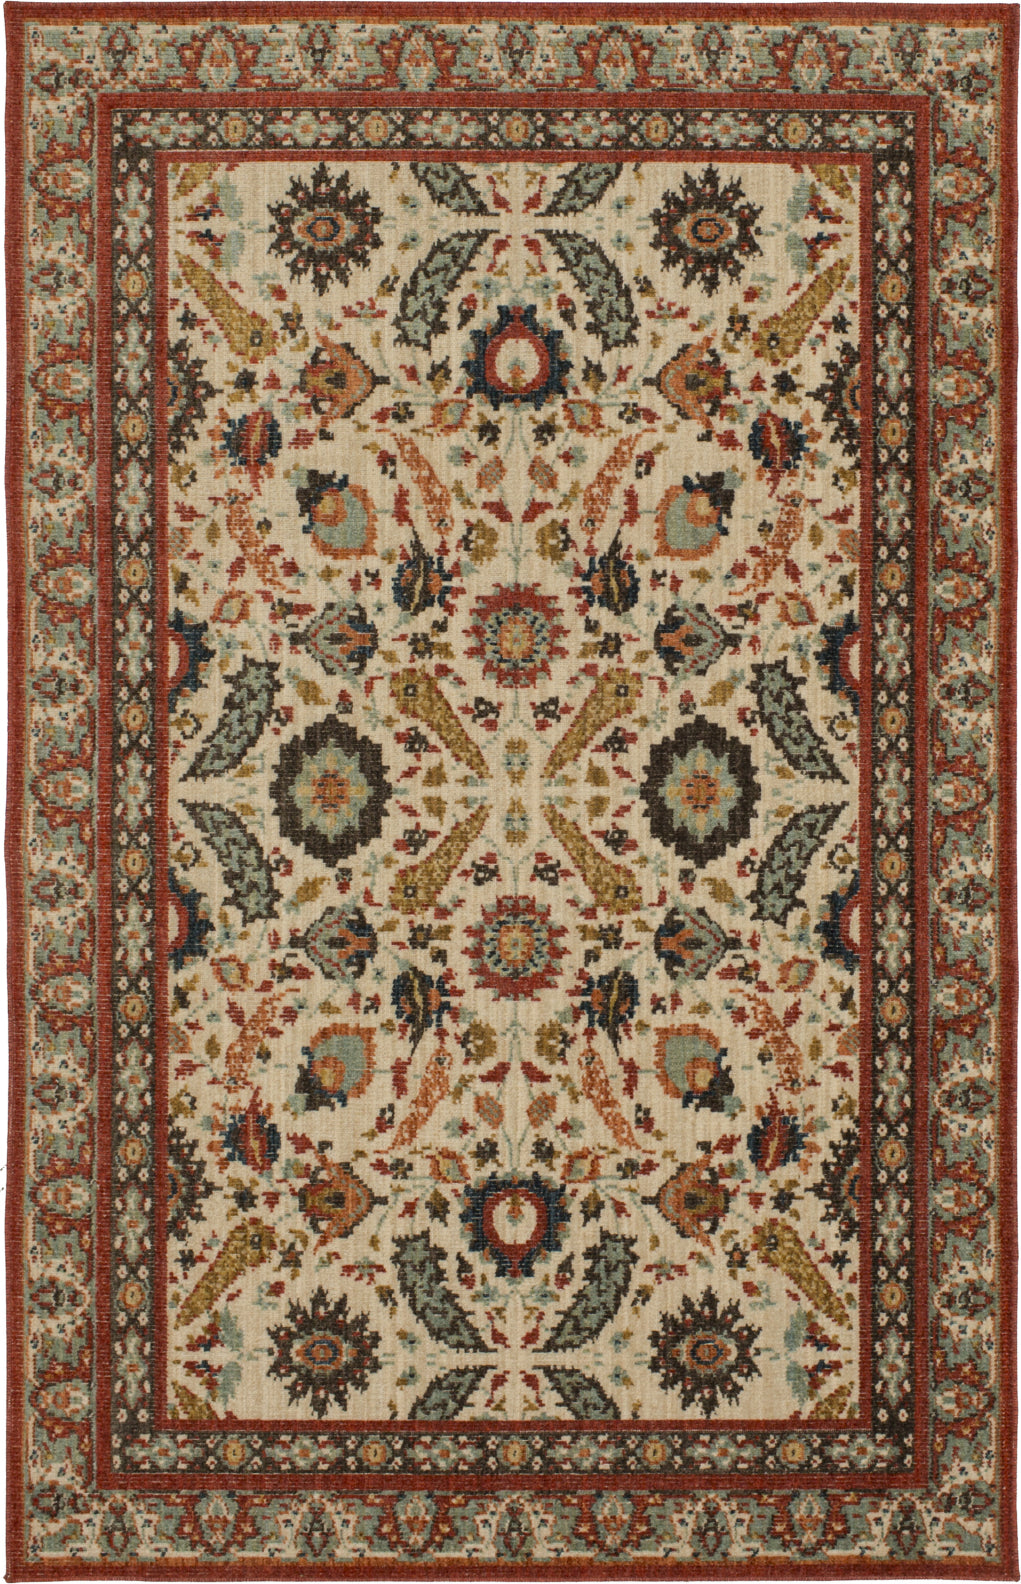 Mohawk Home Vintage Tapis In Full Bloom Garnet Multi Area Rug by Patina Vie main image